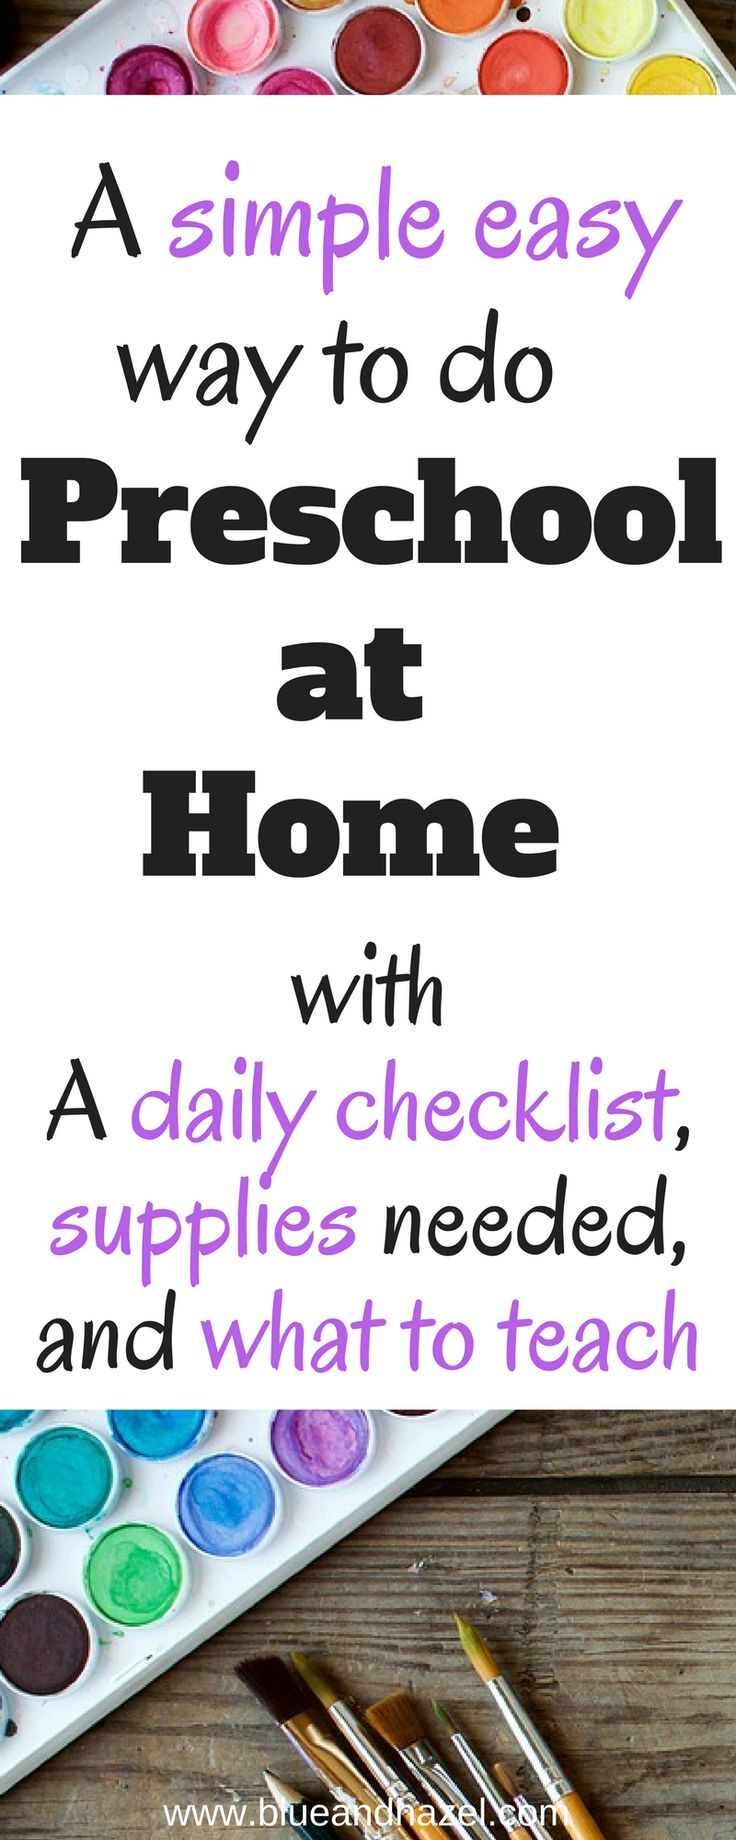 Preschool at home can be easy and fun! Learn how she does homeschool preschool, see a daily preschool routine with a 3 & 5 year old, and get a checklist to help you plan what to do each day! This is perfect for helping you get started teaching preschool at home with everything to teach before Kindergarten. #preschool #homeschool #toddler #learning